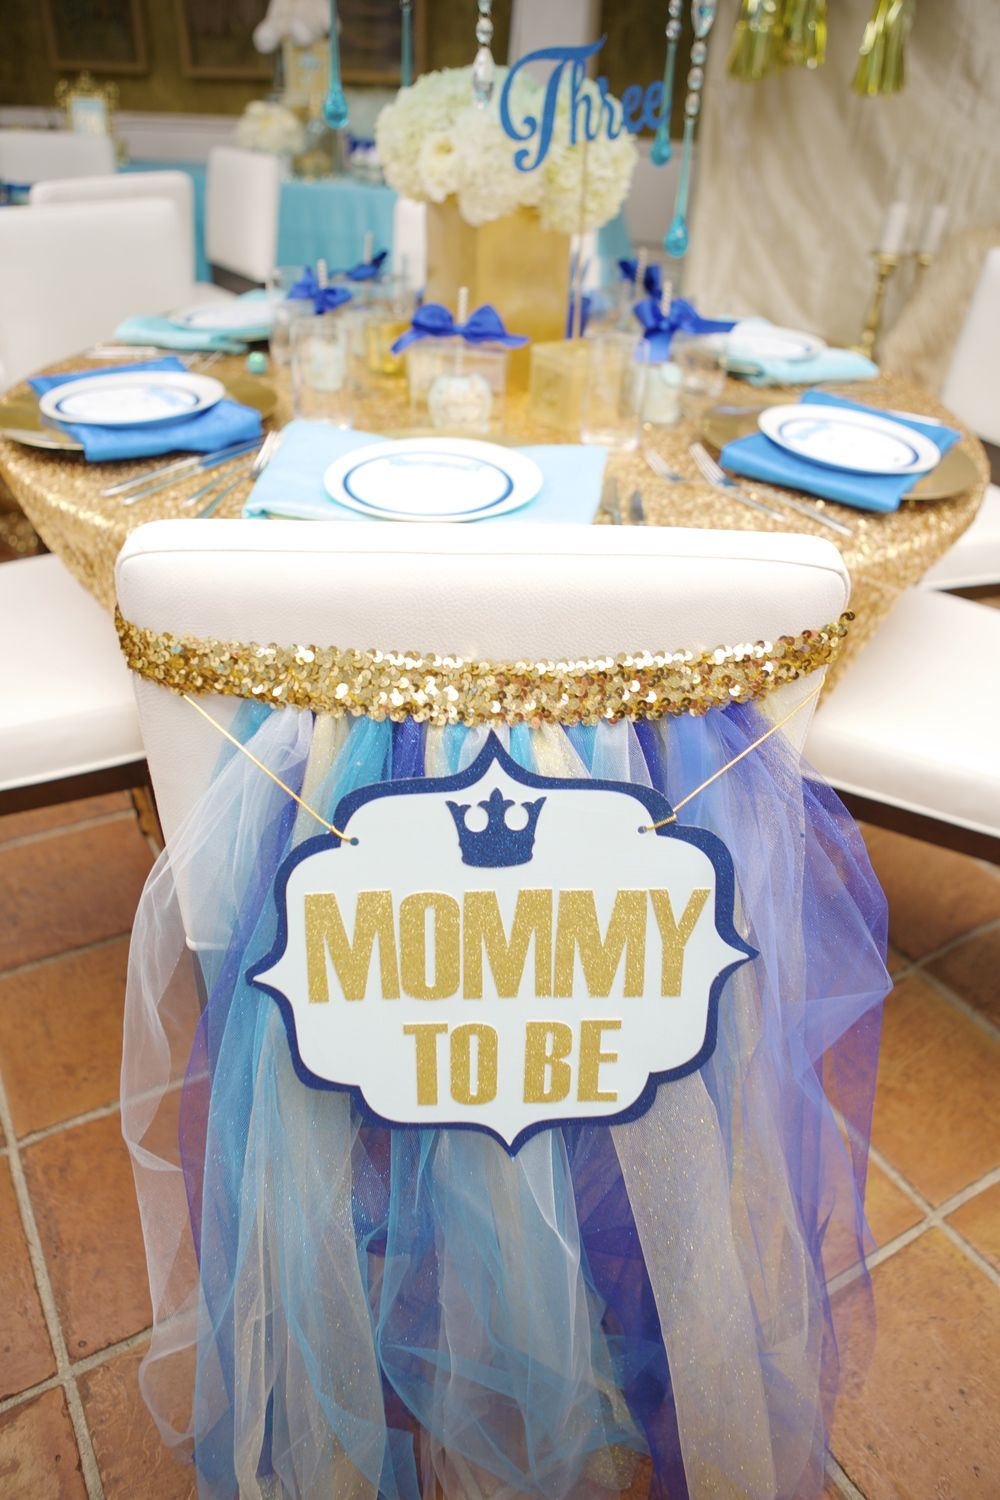 Mommy To Be Sign For Chair Back At Baby Shower Dining Tables At Fig